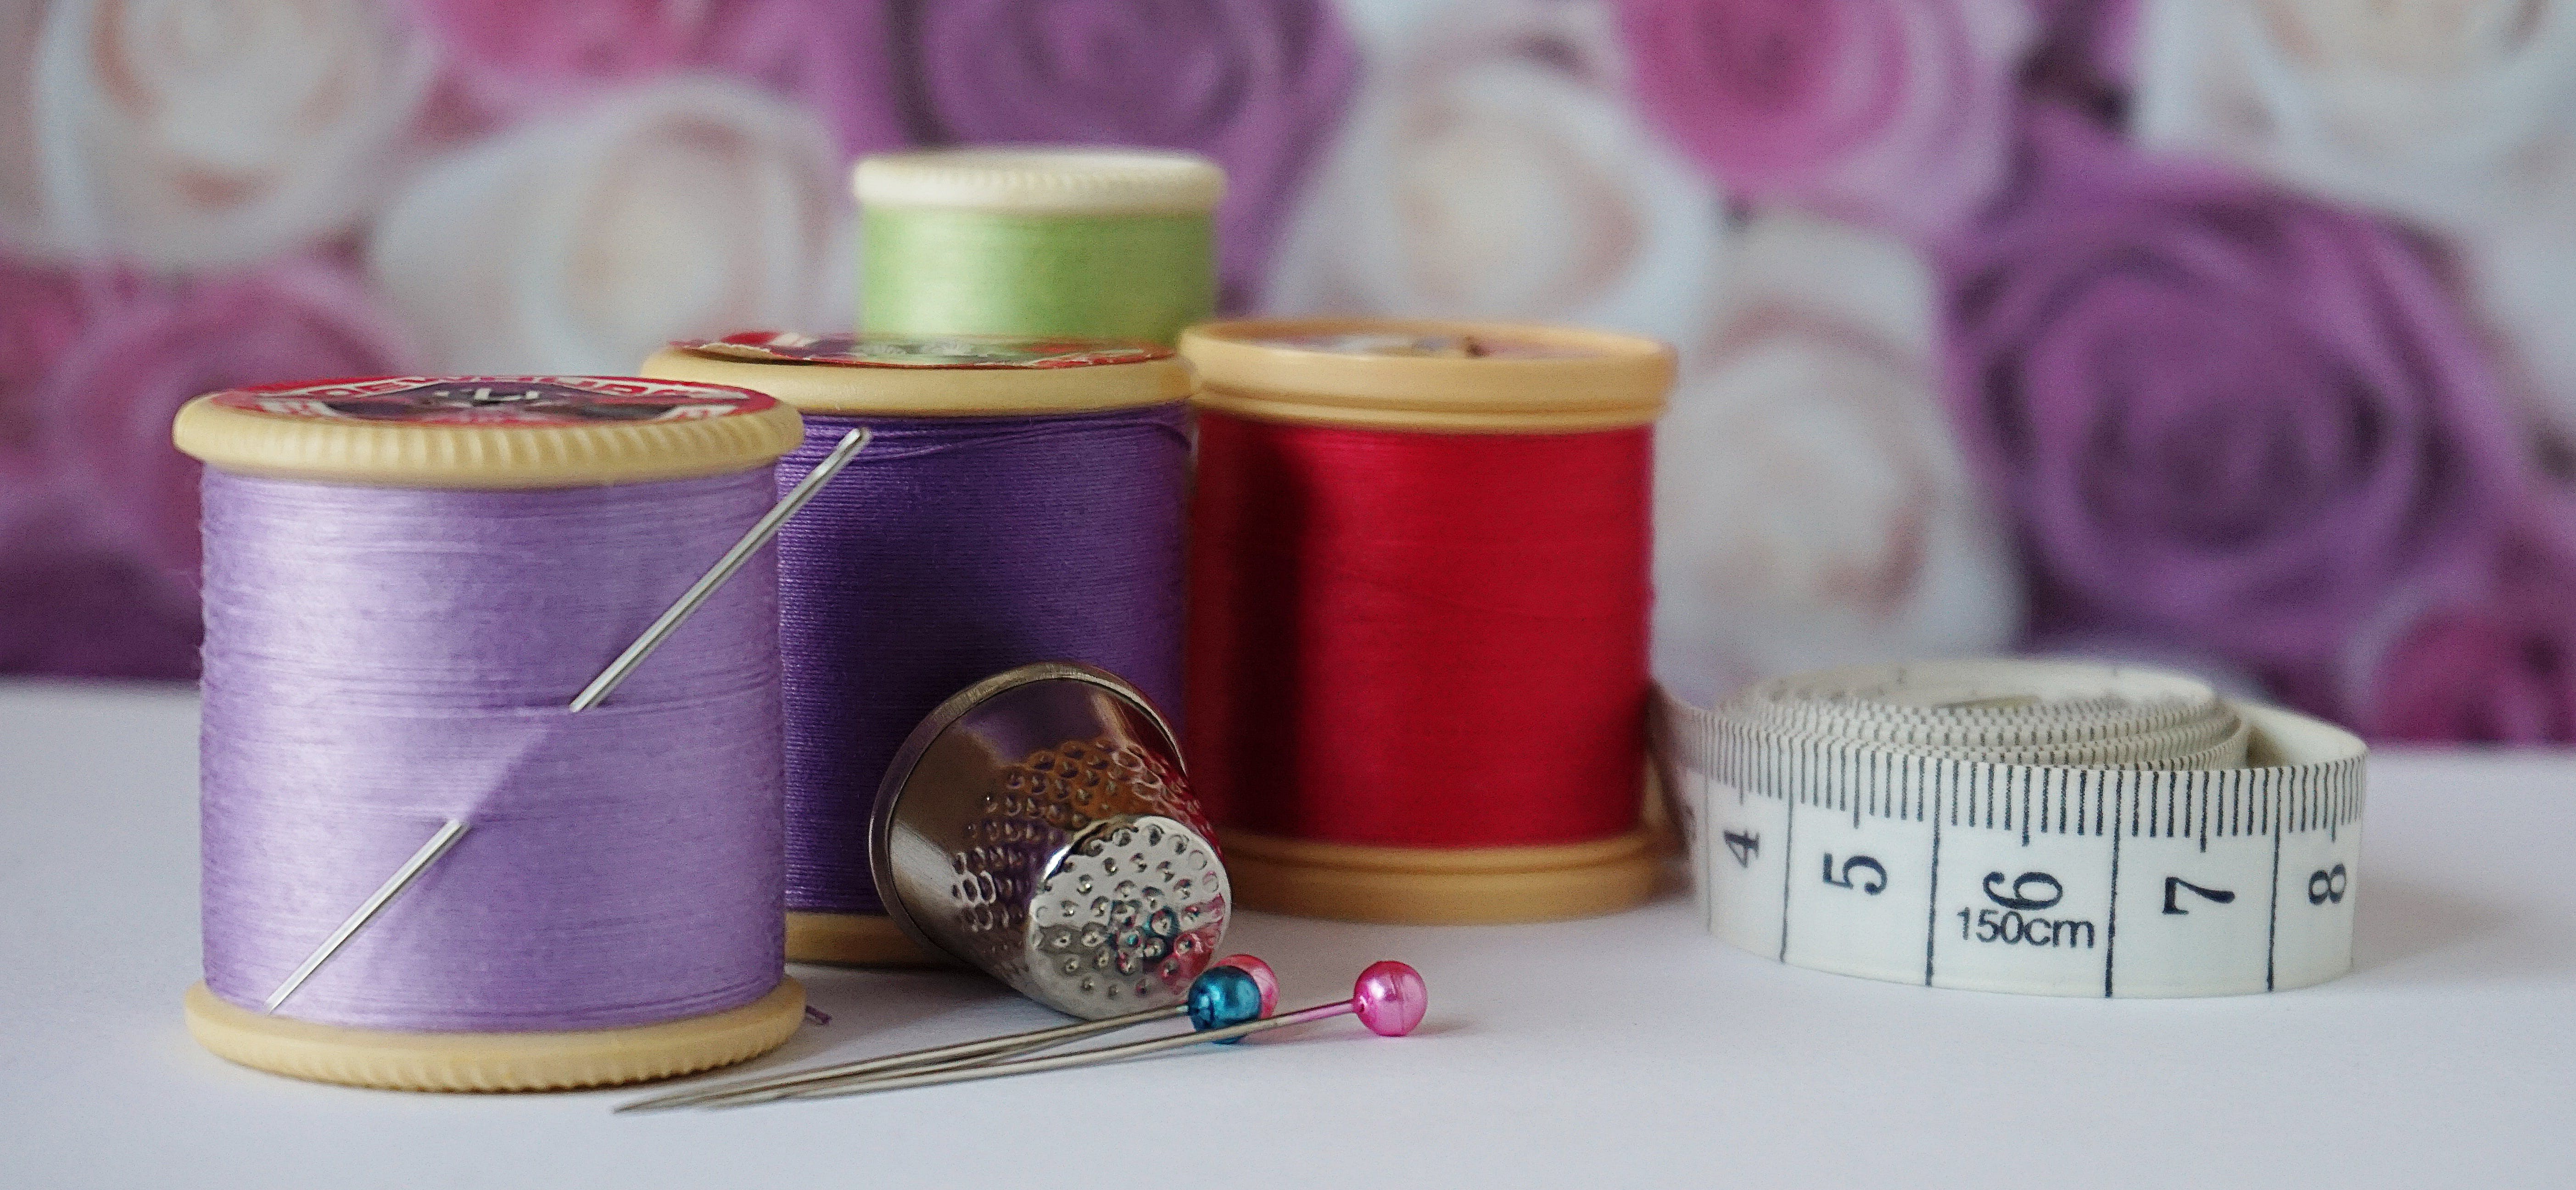 Free stock photo of vintage, crafts, cotton, sewing